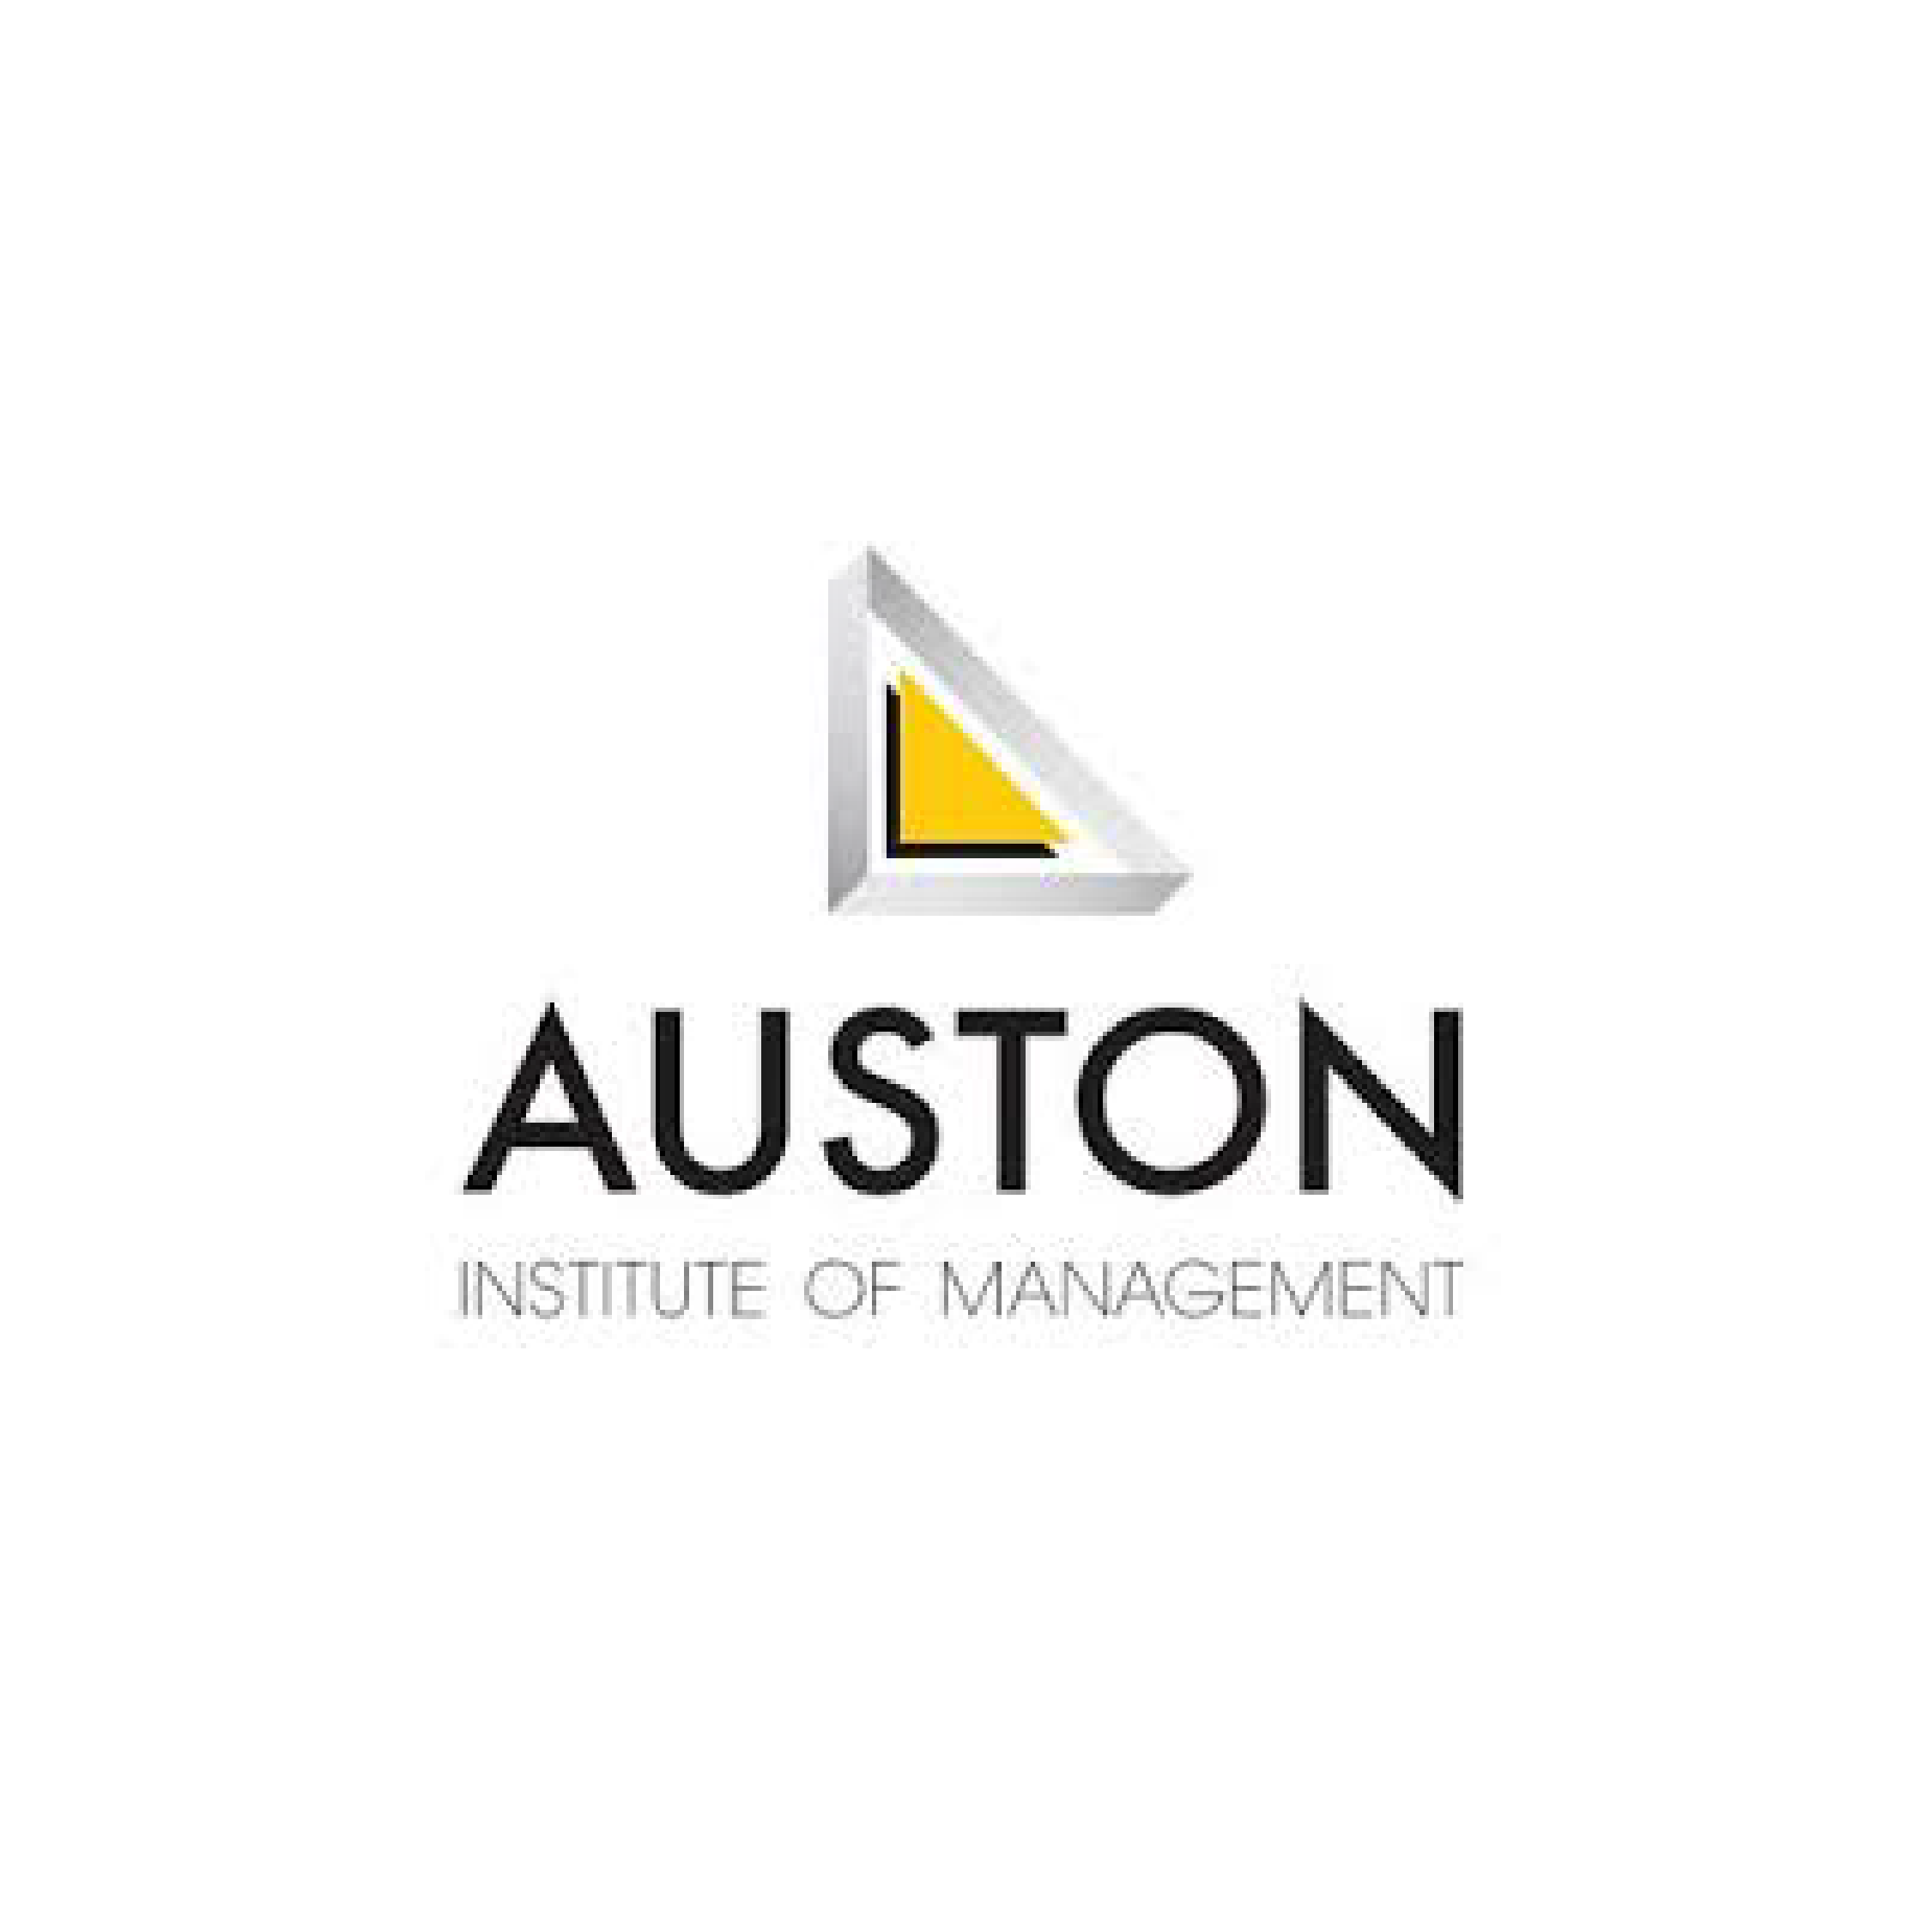 Smarties Partners, Yes Study, Aug 2020_Auston Institute of Management